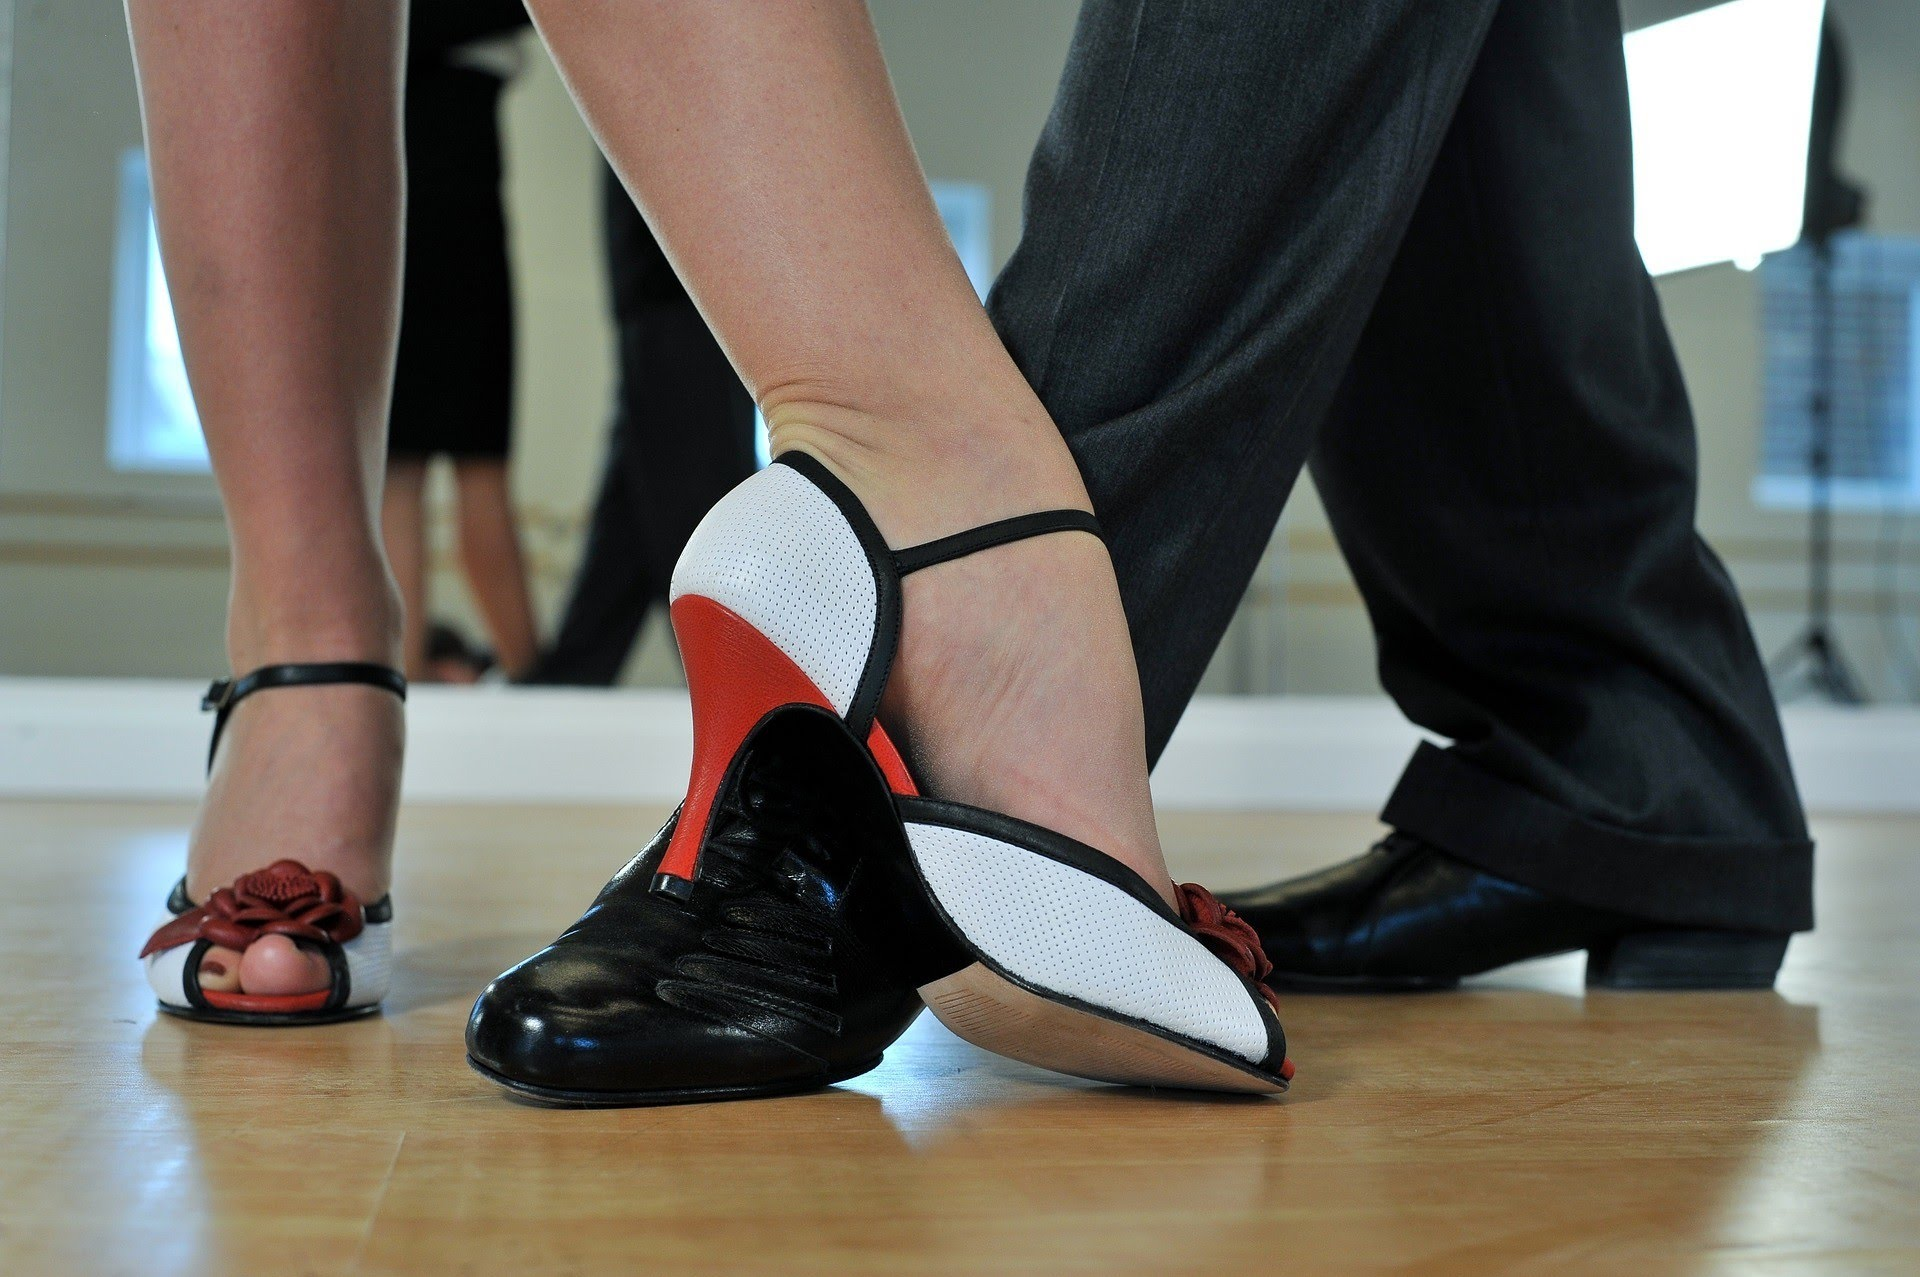 north sydney bondi tango lesson classes instruction